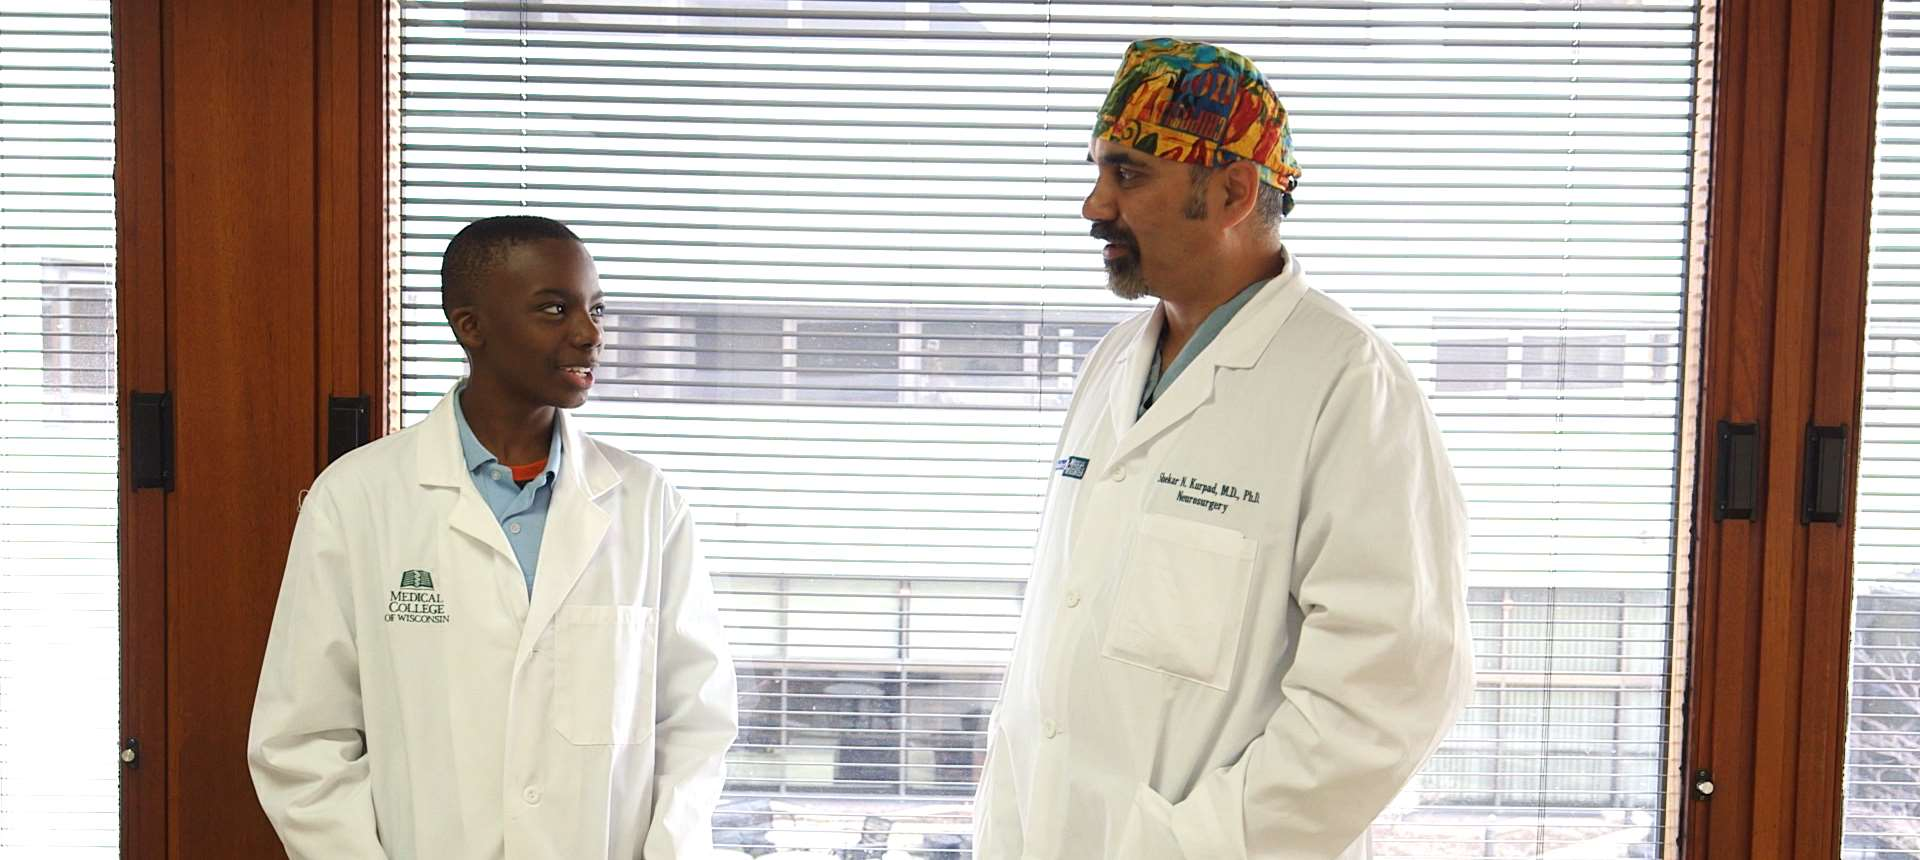 Aremontae Rawls and Shekar Kurpad, MD, PhD